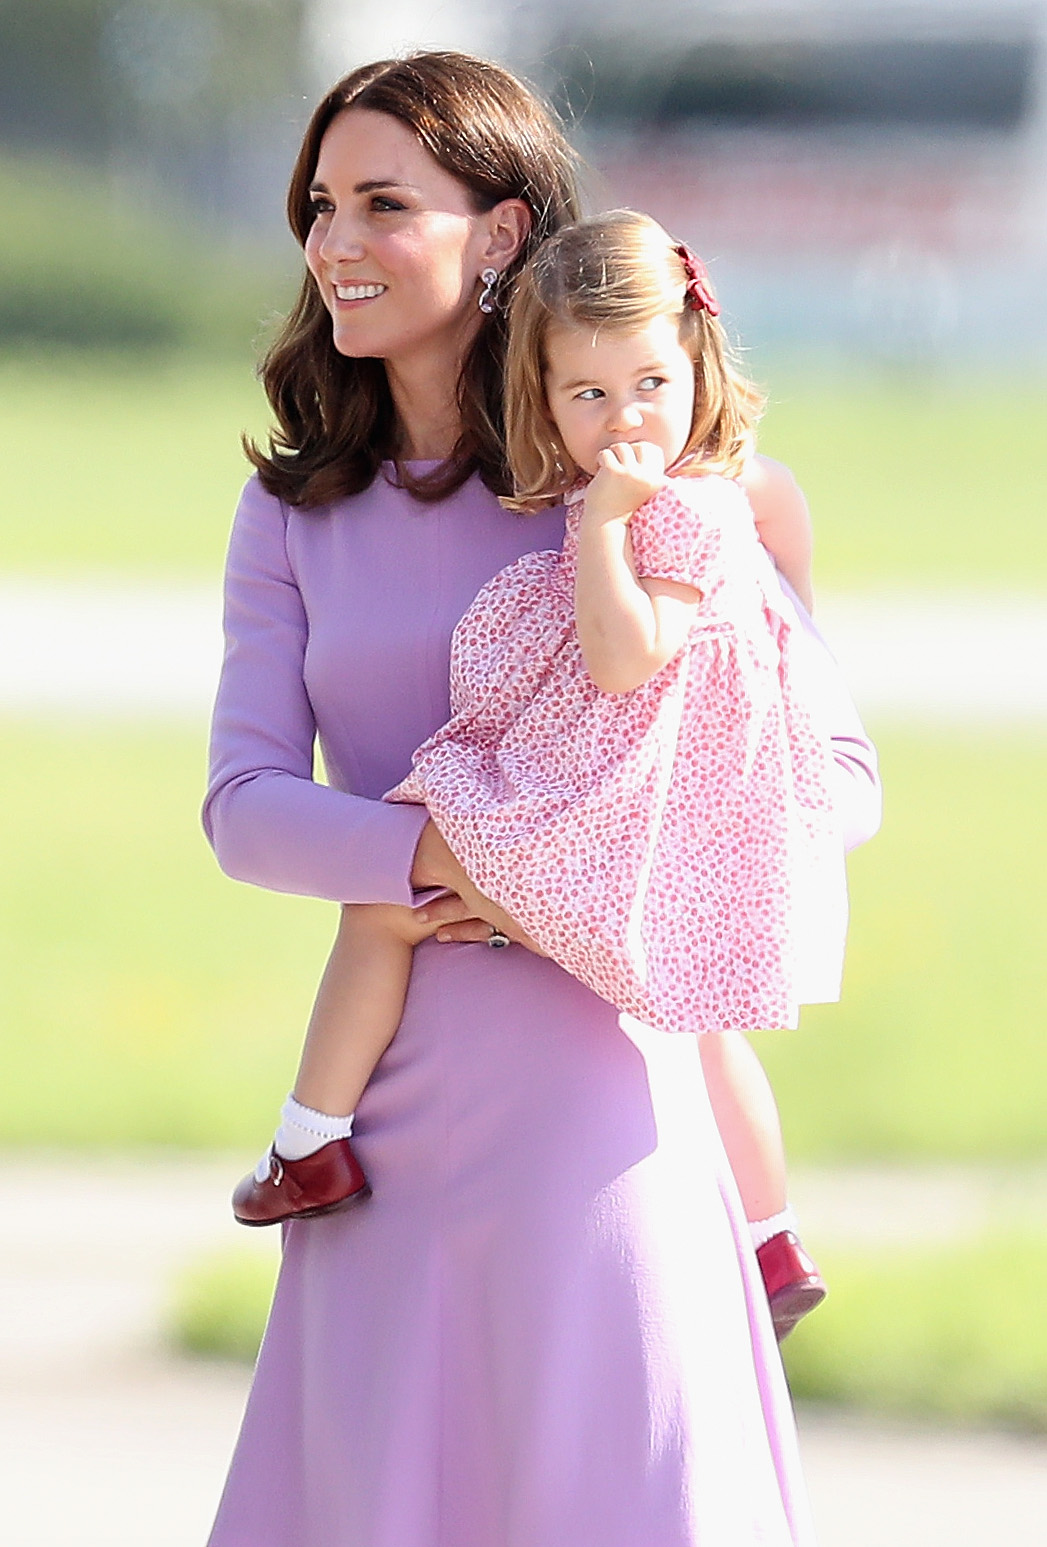 Kate Middleton with daughter Charlotte in Hamburg, Germany on July 21, 2017 (Getty Images)